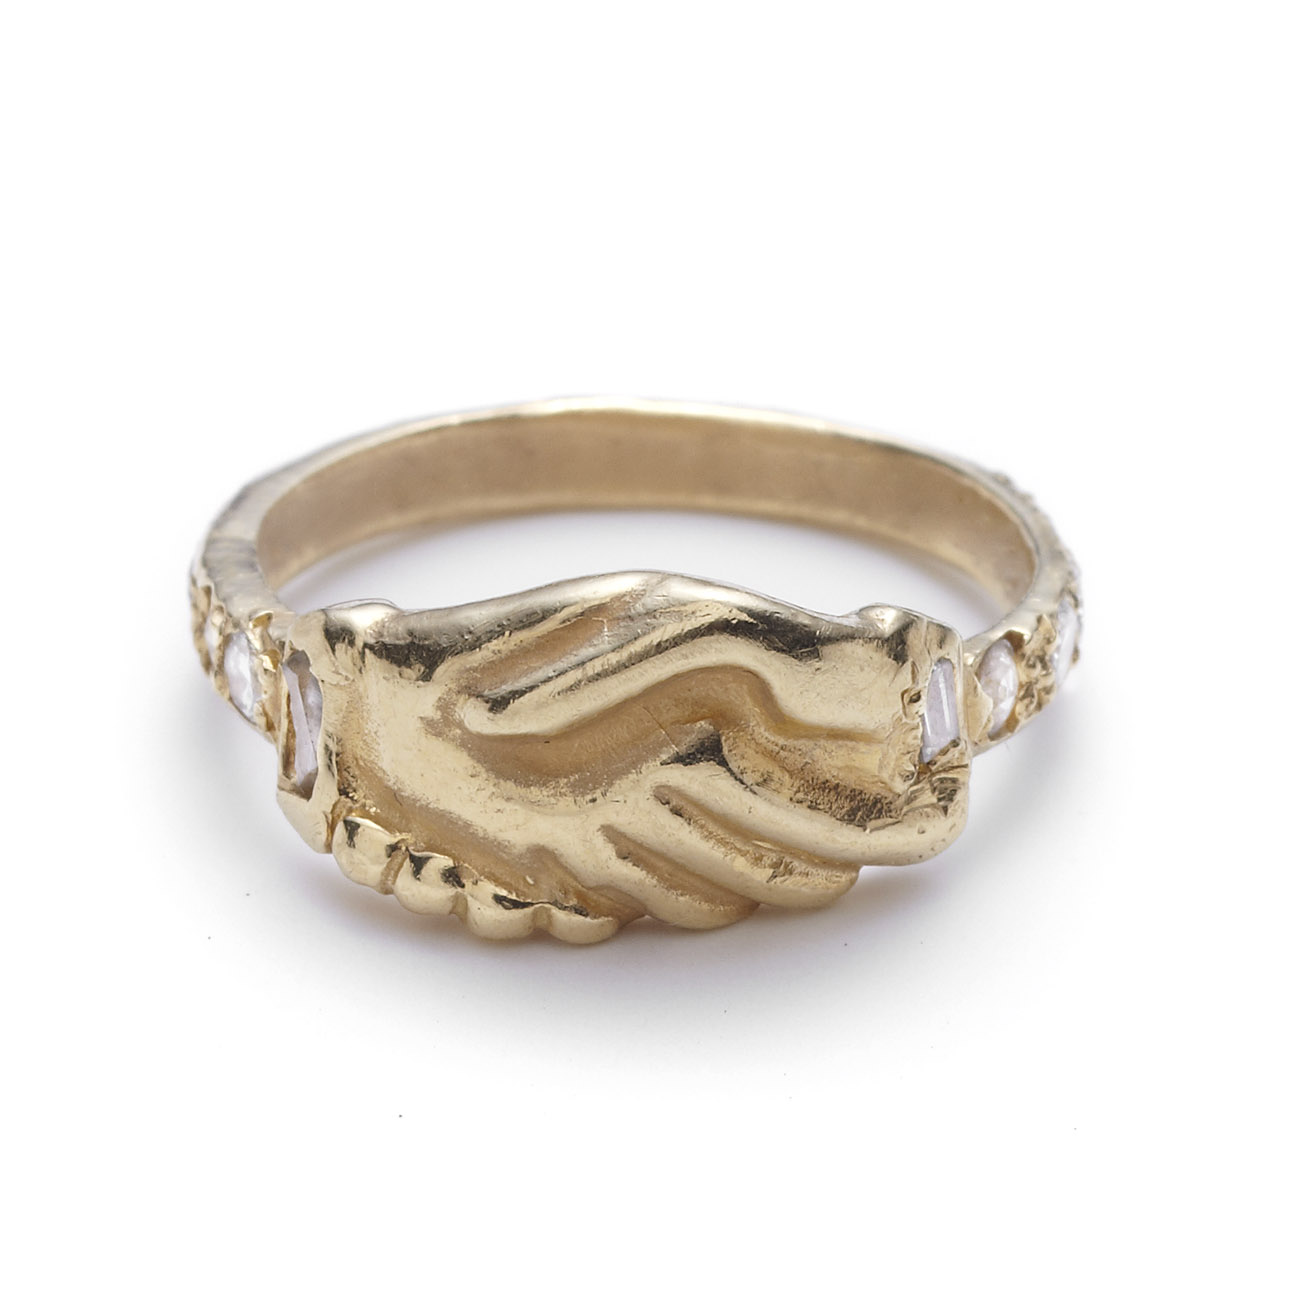 Yellow Gold Clasped Hands Ring - Elisa Solomon Jewelry